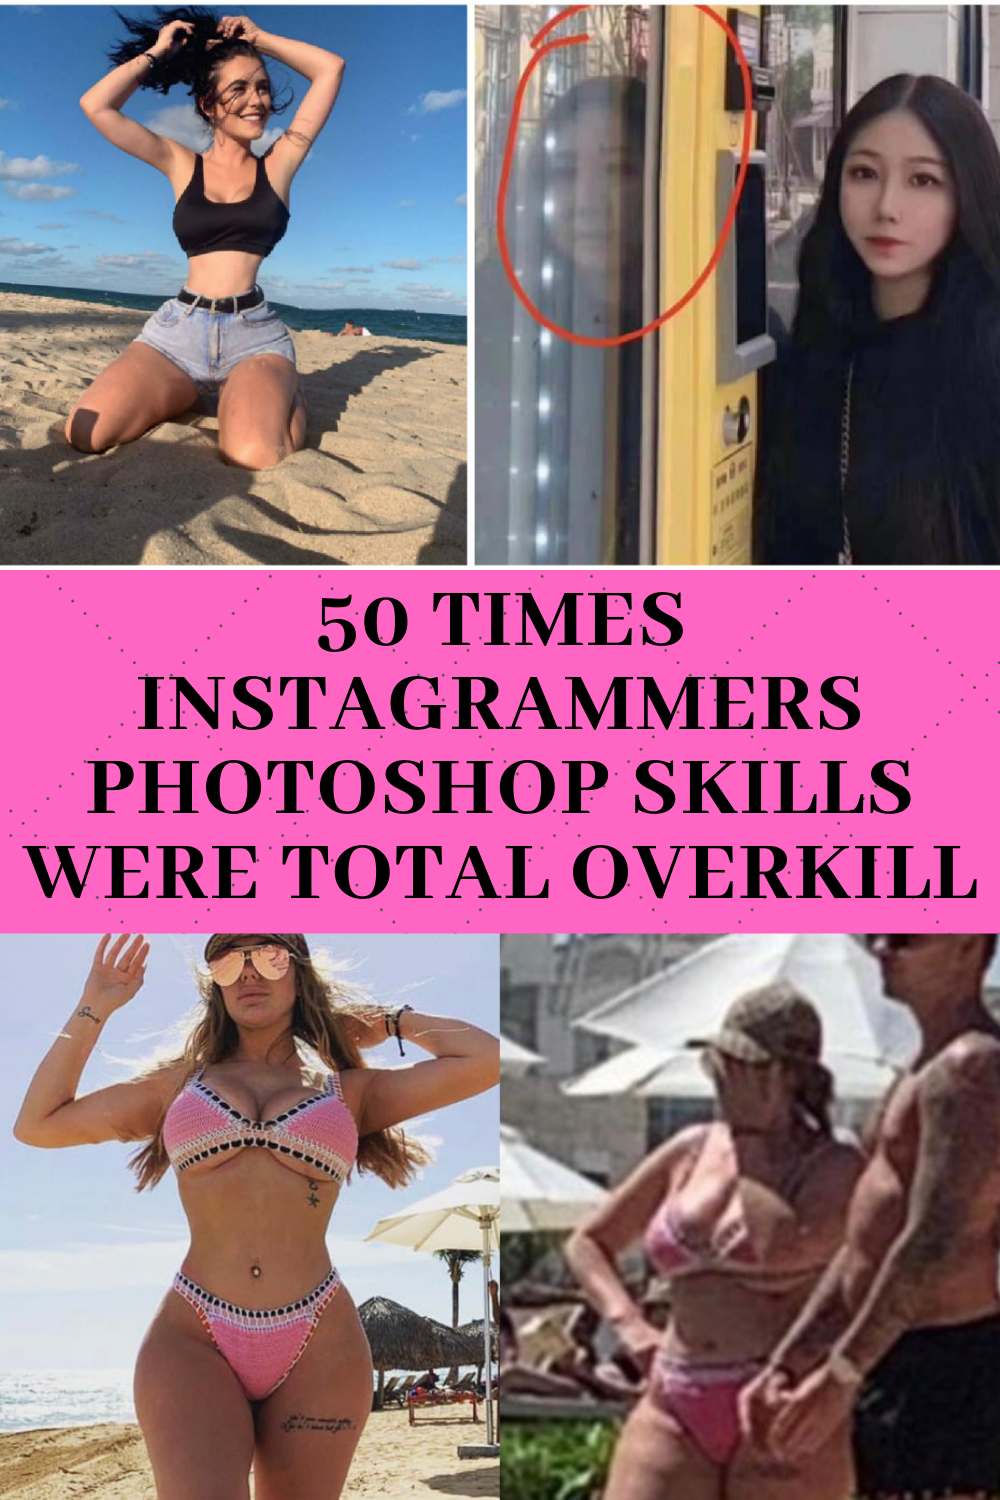 50 times Instagrammers photoshop skills were total overkill